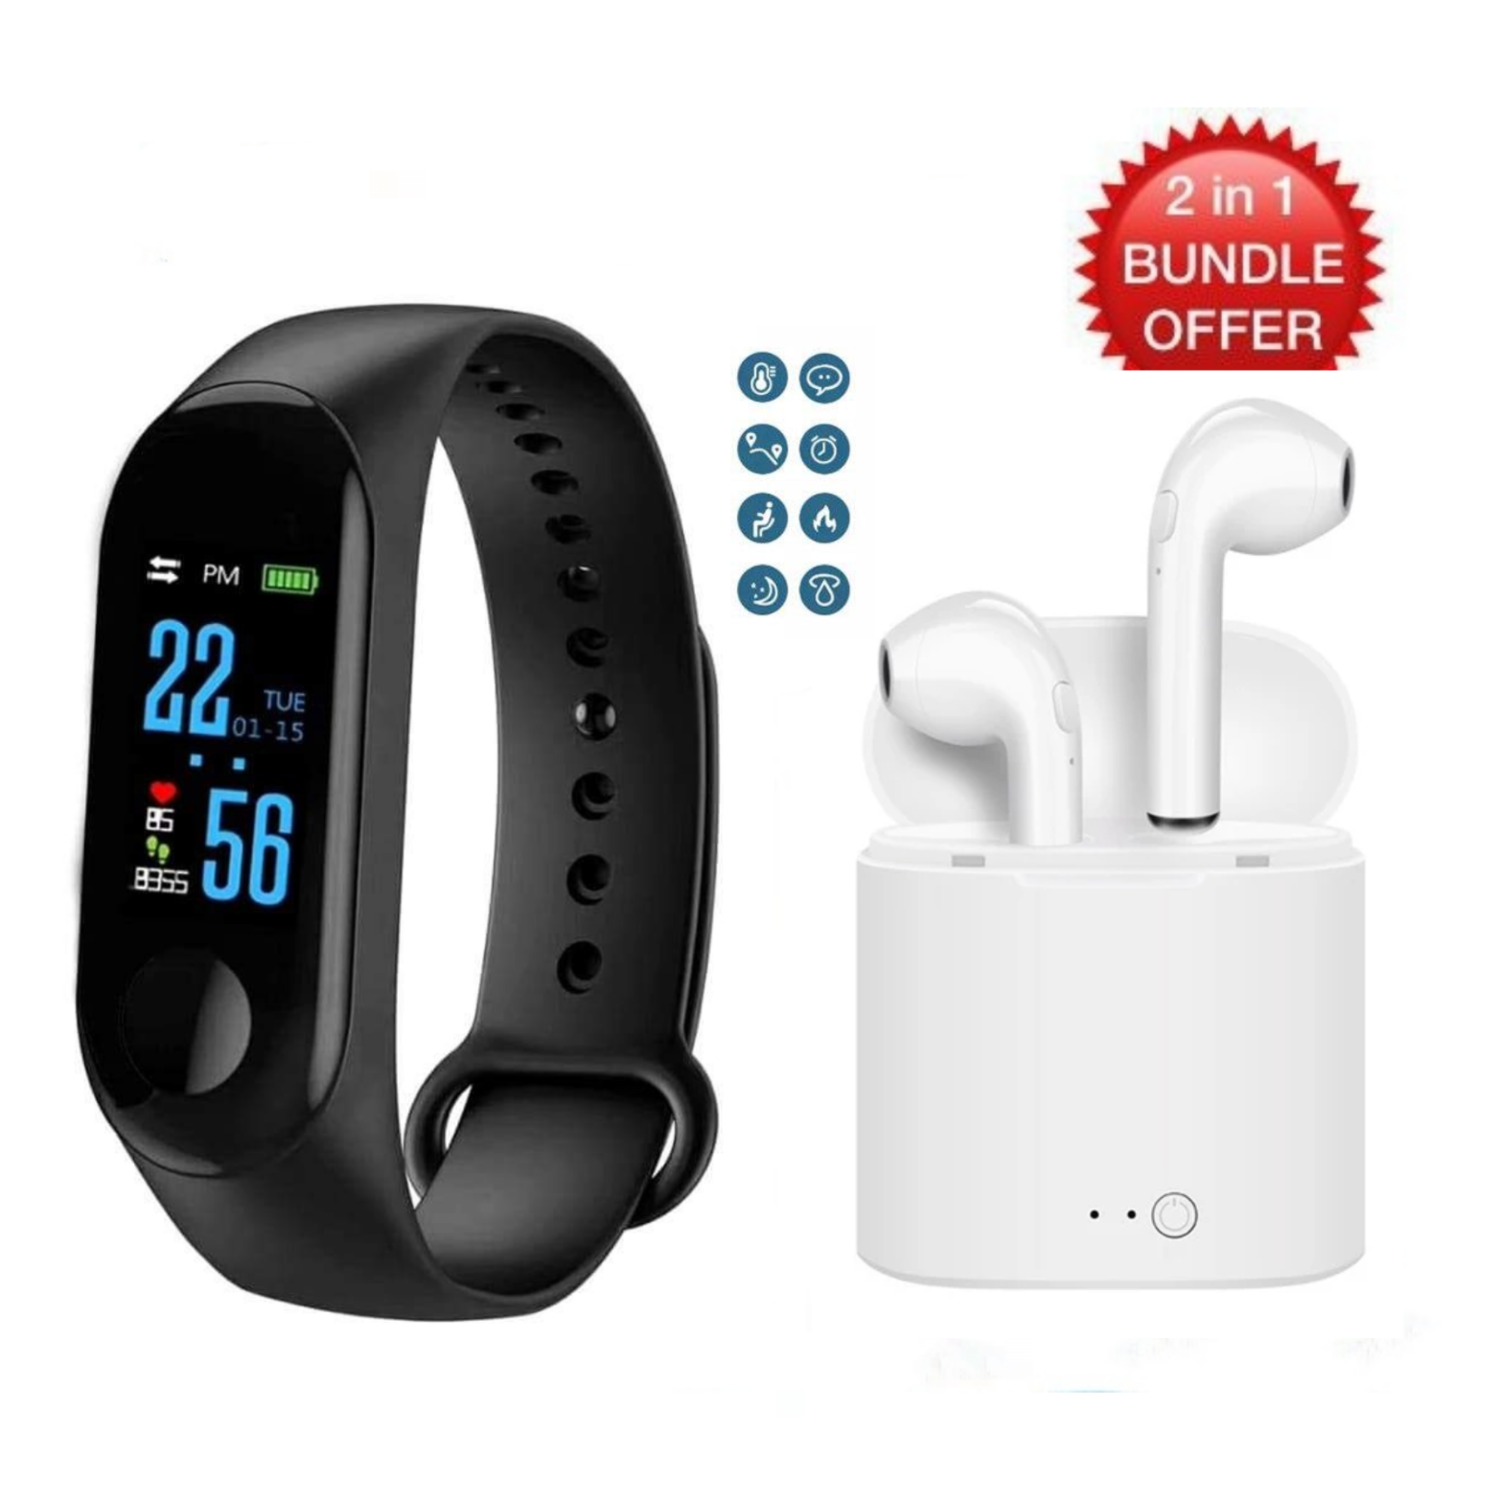 2 in 1 Bundle: M3 Smart Band with Health Tracker, Blood Pressure, Heart Rate etc + TWS Bluetooth Headset